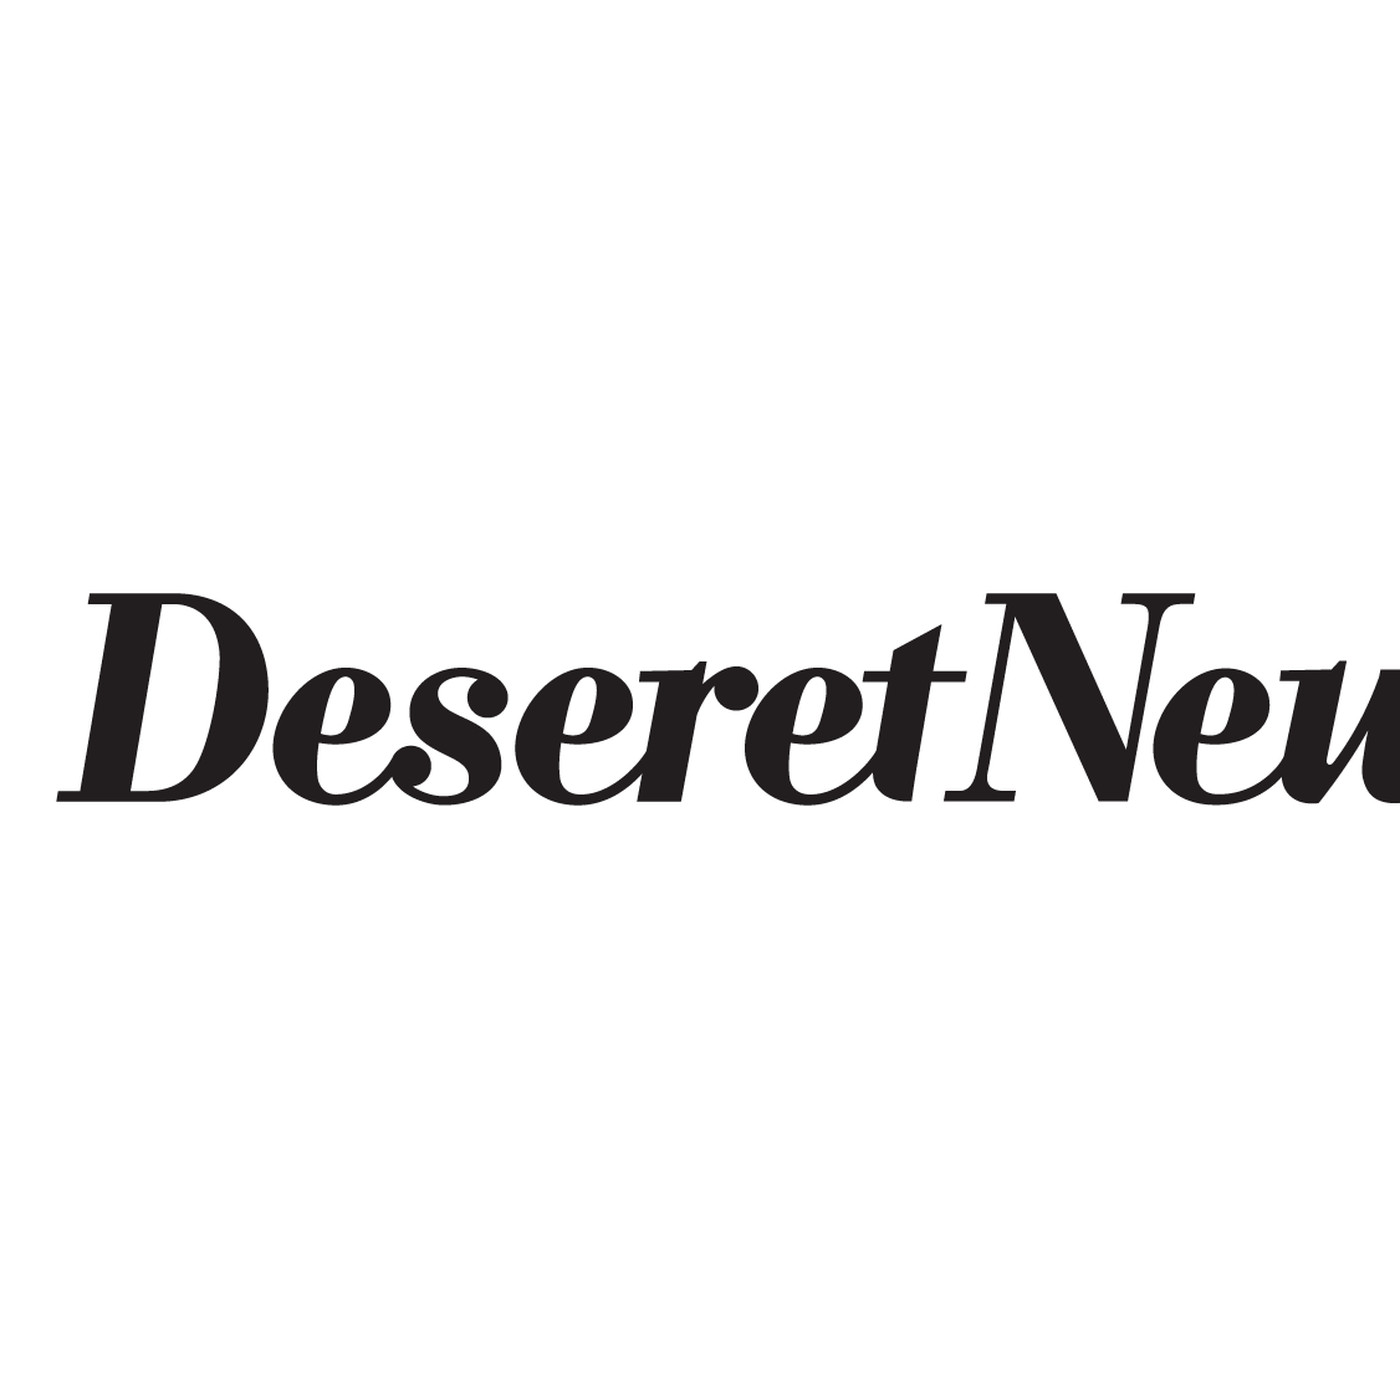 Angela Jane Melini deseret news / granite furniture 10k results - deseret news